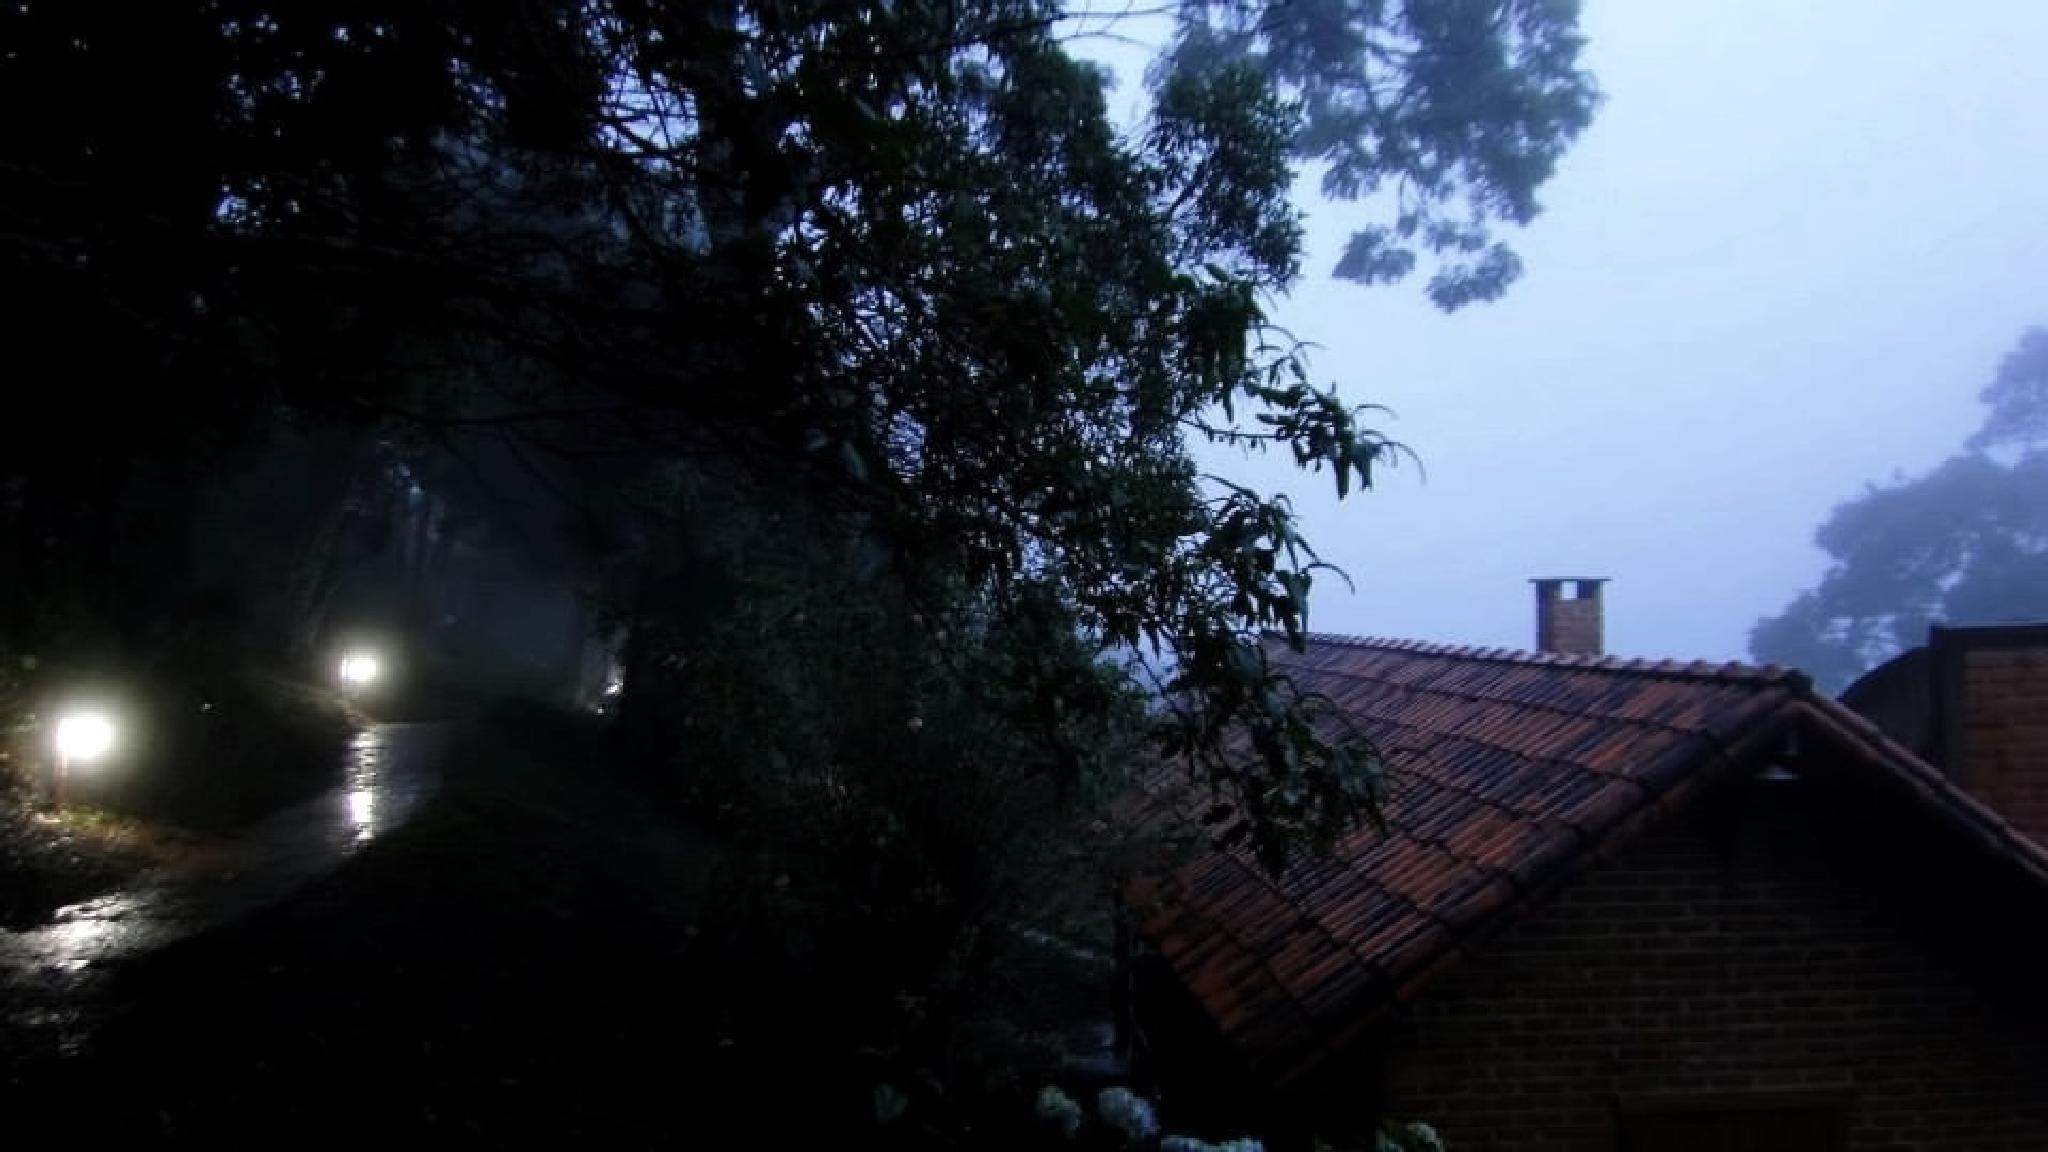 Rain in forest of Ibitipoca at night by Joselito Nardy Ribeiro